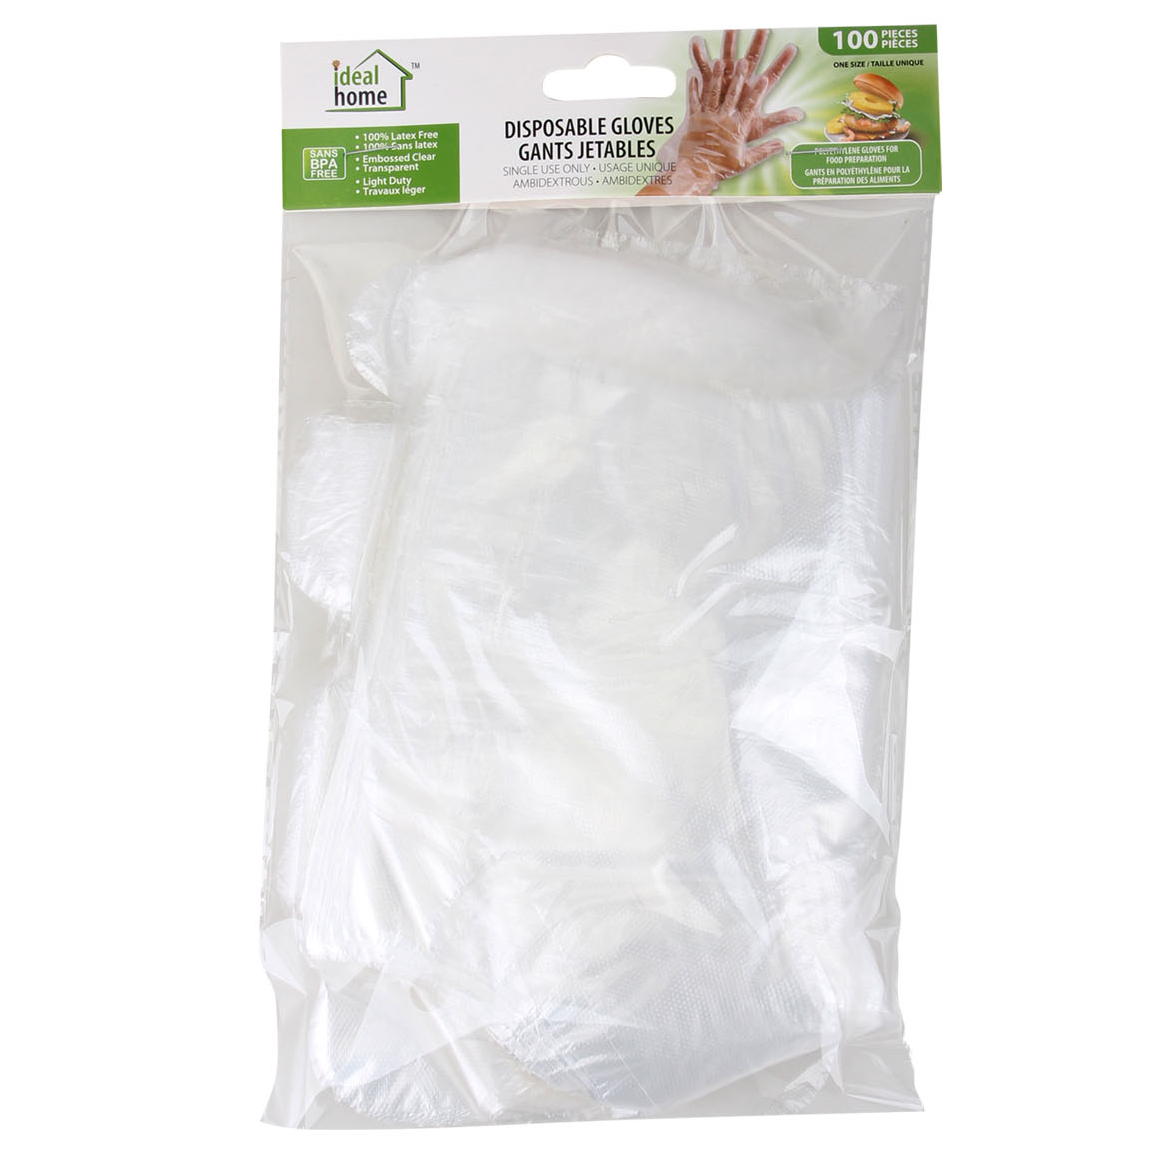 Ideal Home Disposable Gloves 100PK